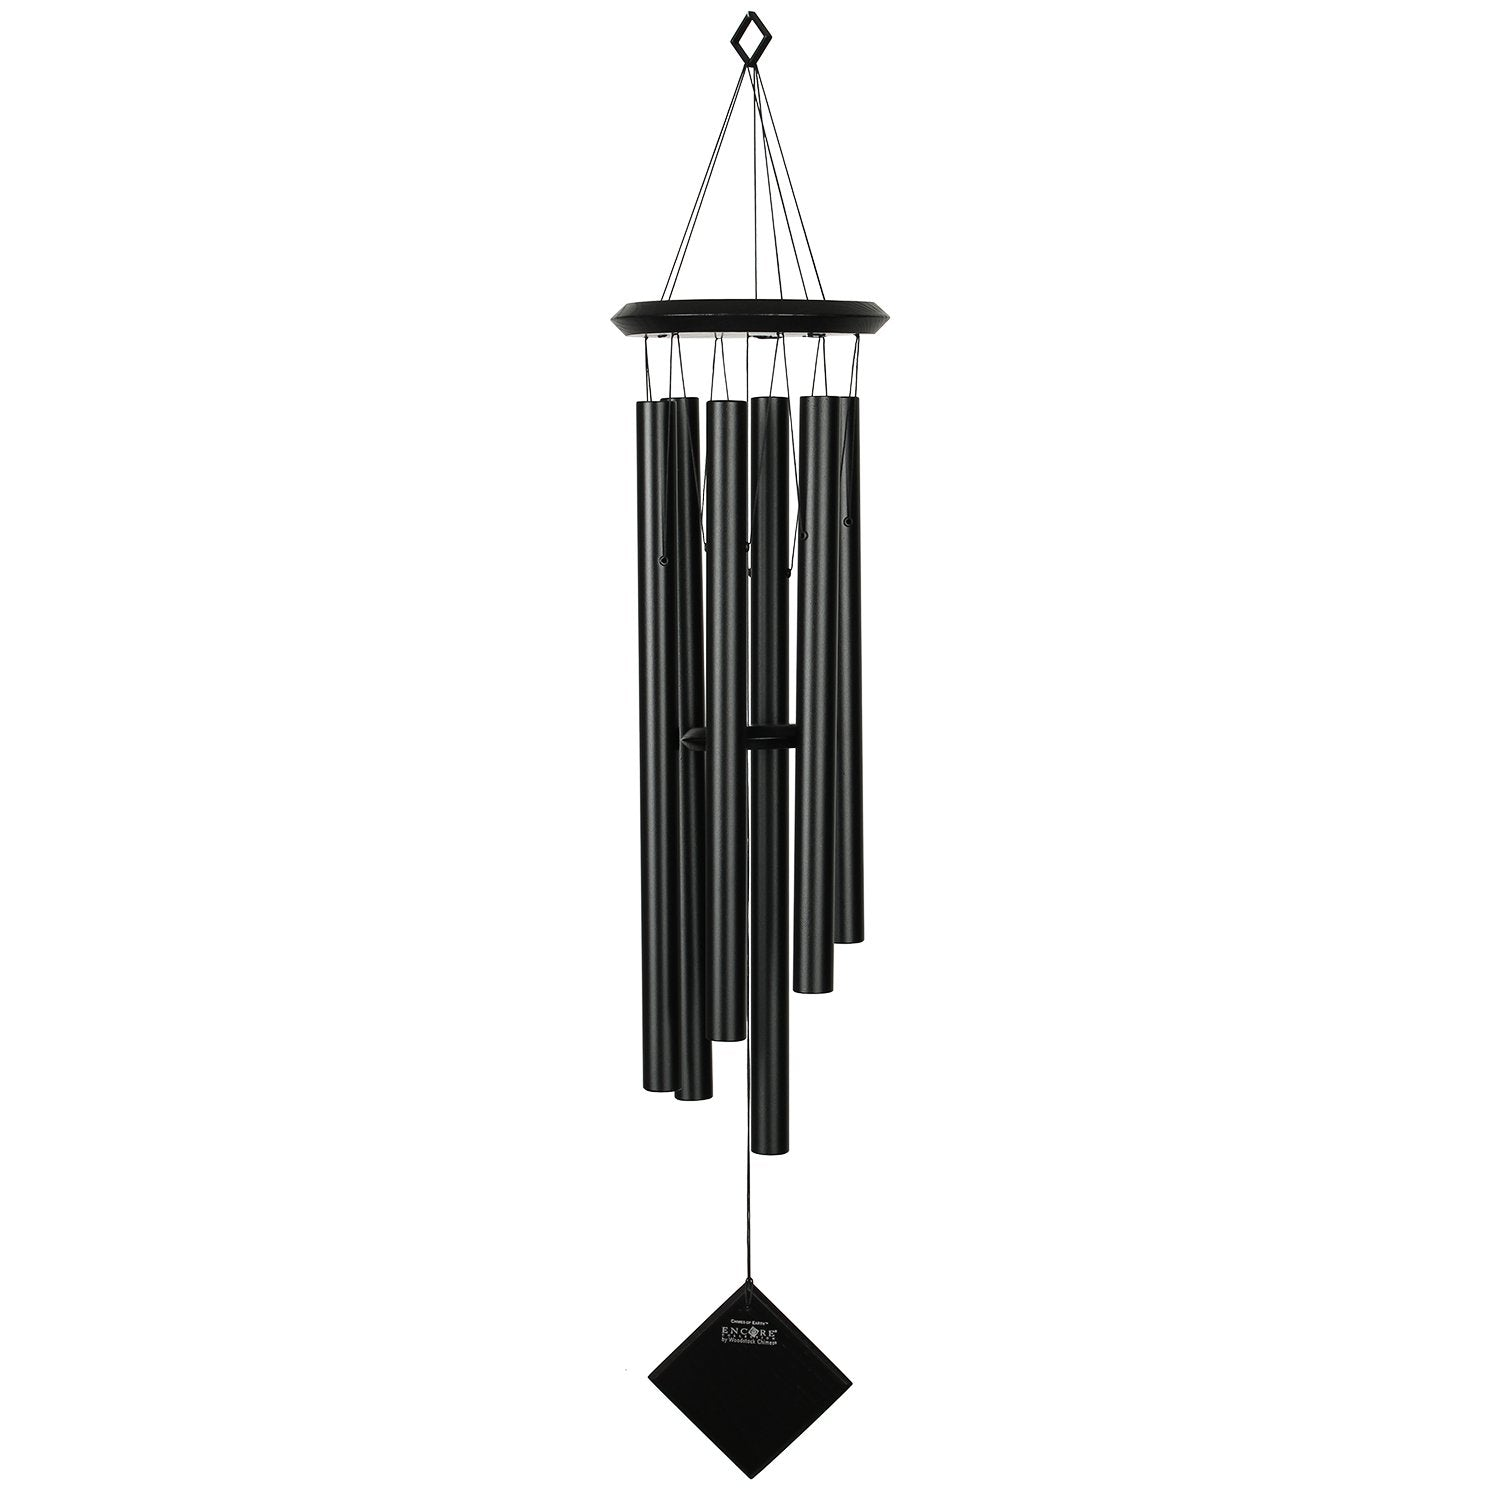 Chimes of Earth - Black/Black full product image